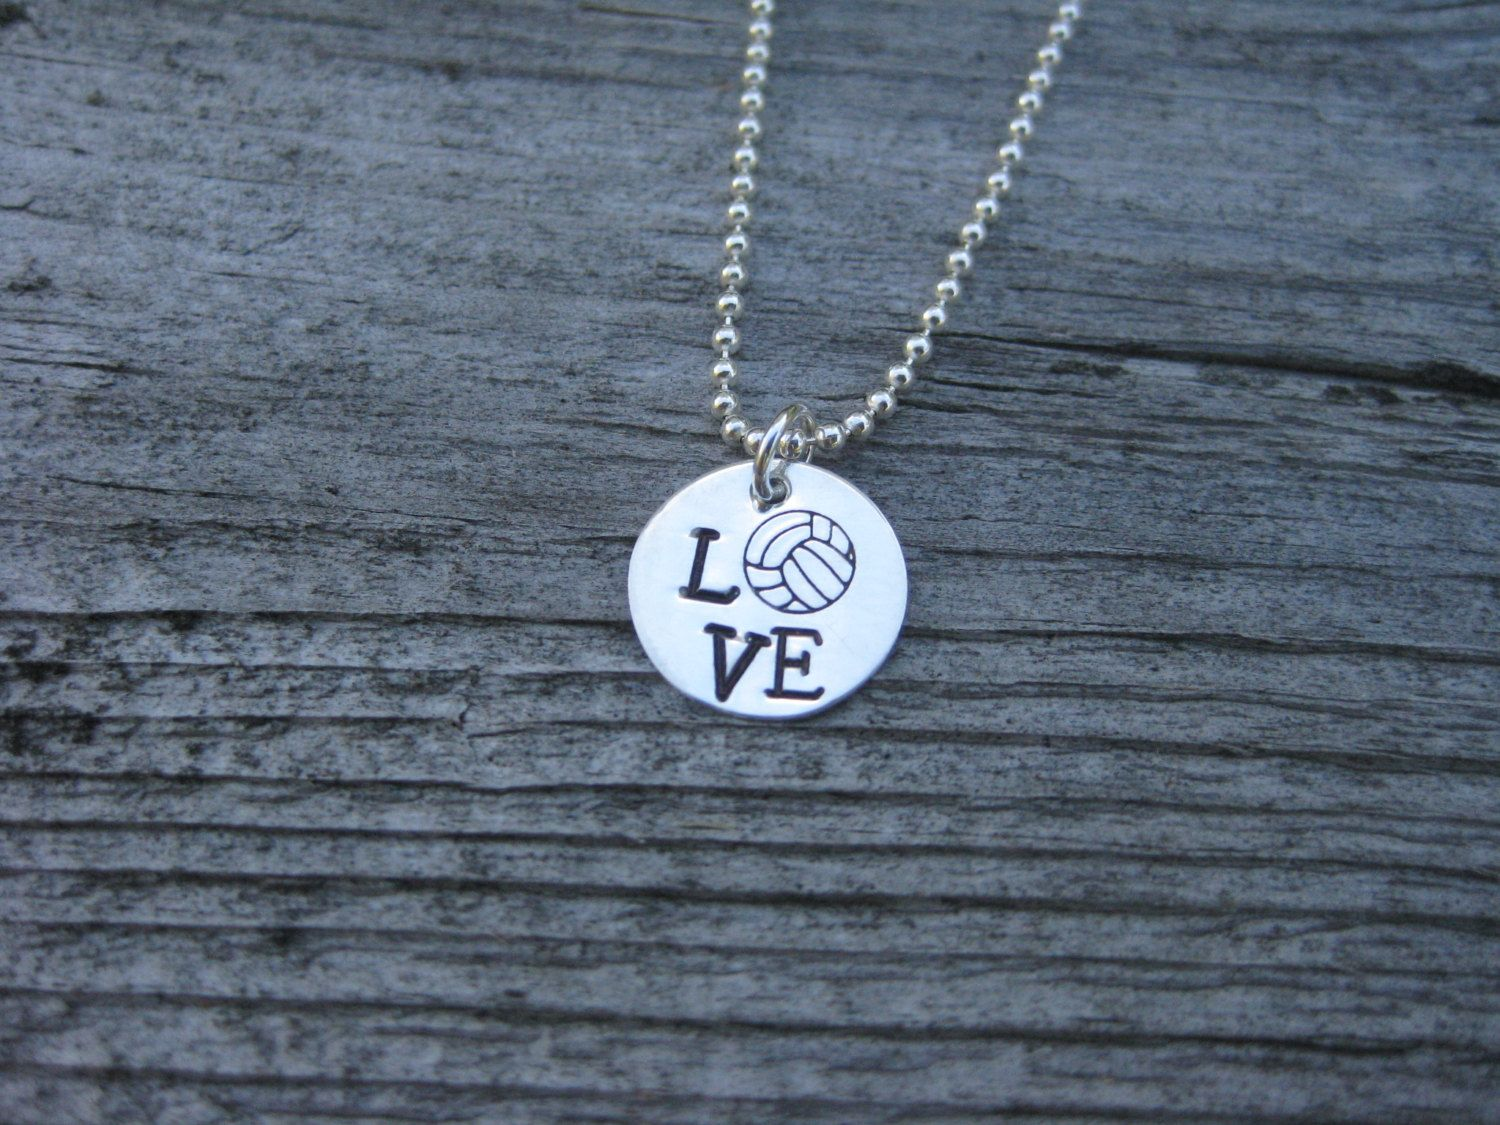 Love Volleyball Necklace Sterling Silver Hand By Esdesigns14 Volleyball Necklace Necklace Silver